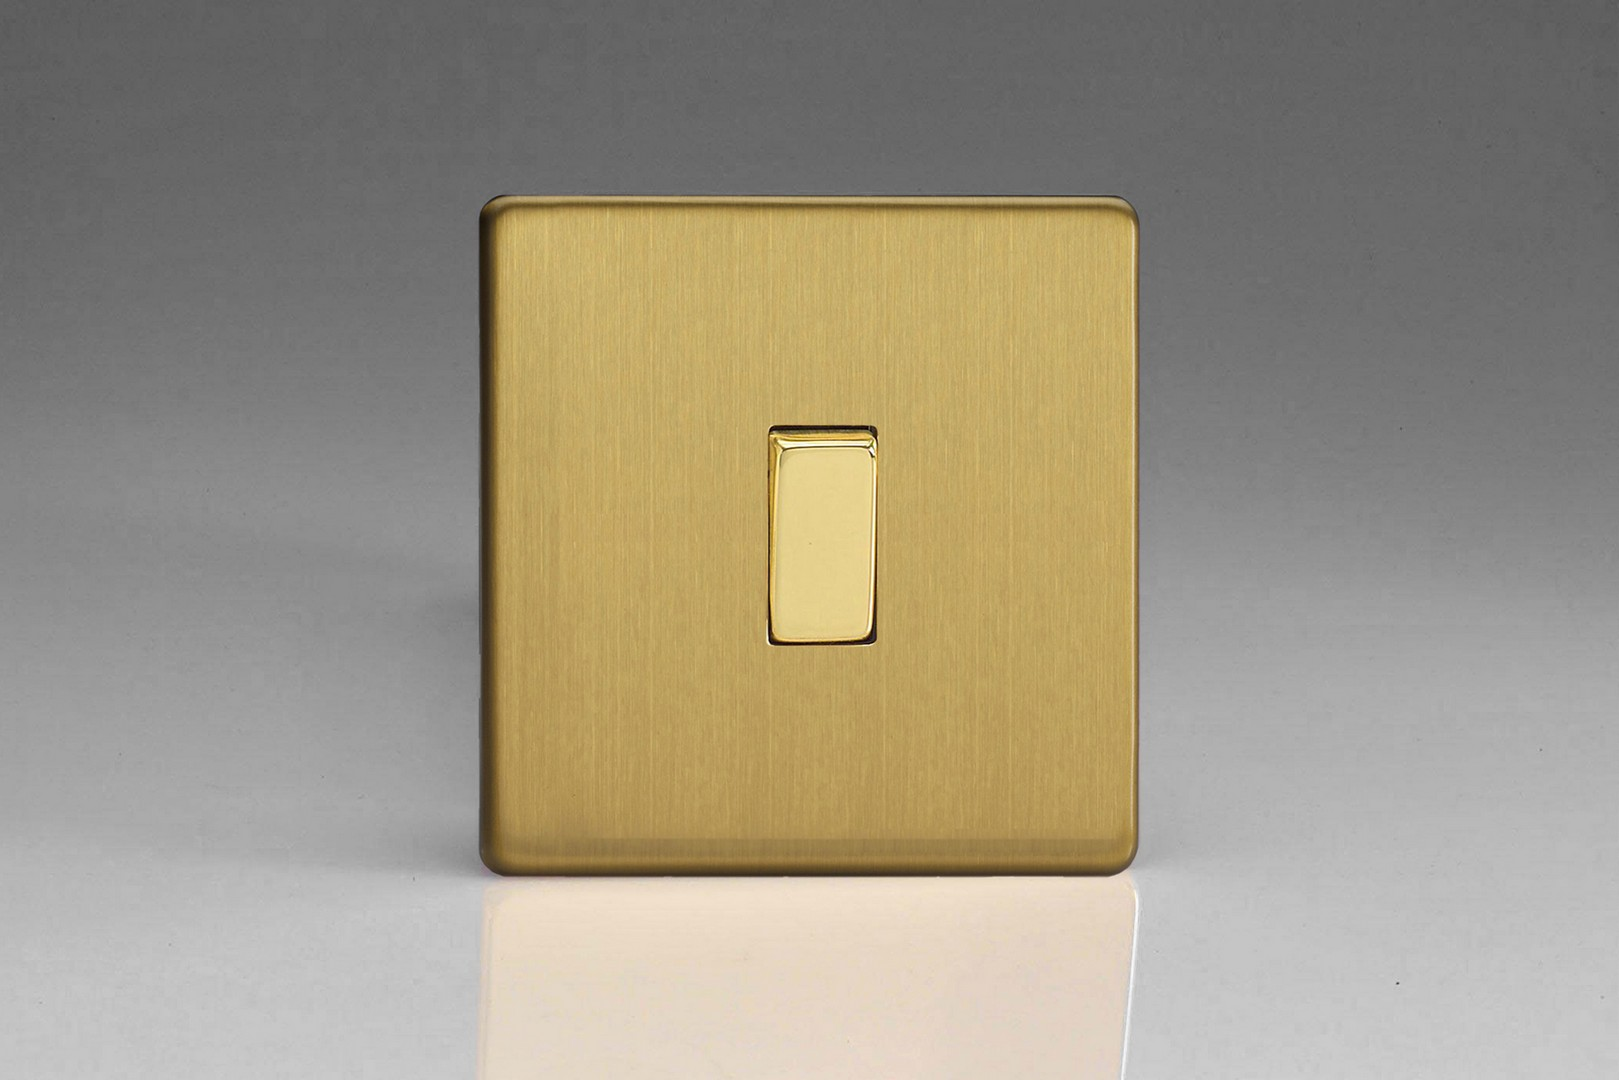 Flat Plate Screwless Brushed Brass 1 Gang 10a 1 Or 2 Way Rocker Switch Switch Socket And Supplies